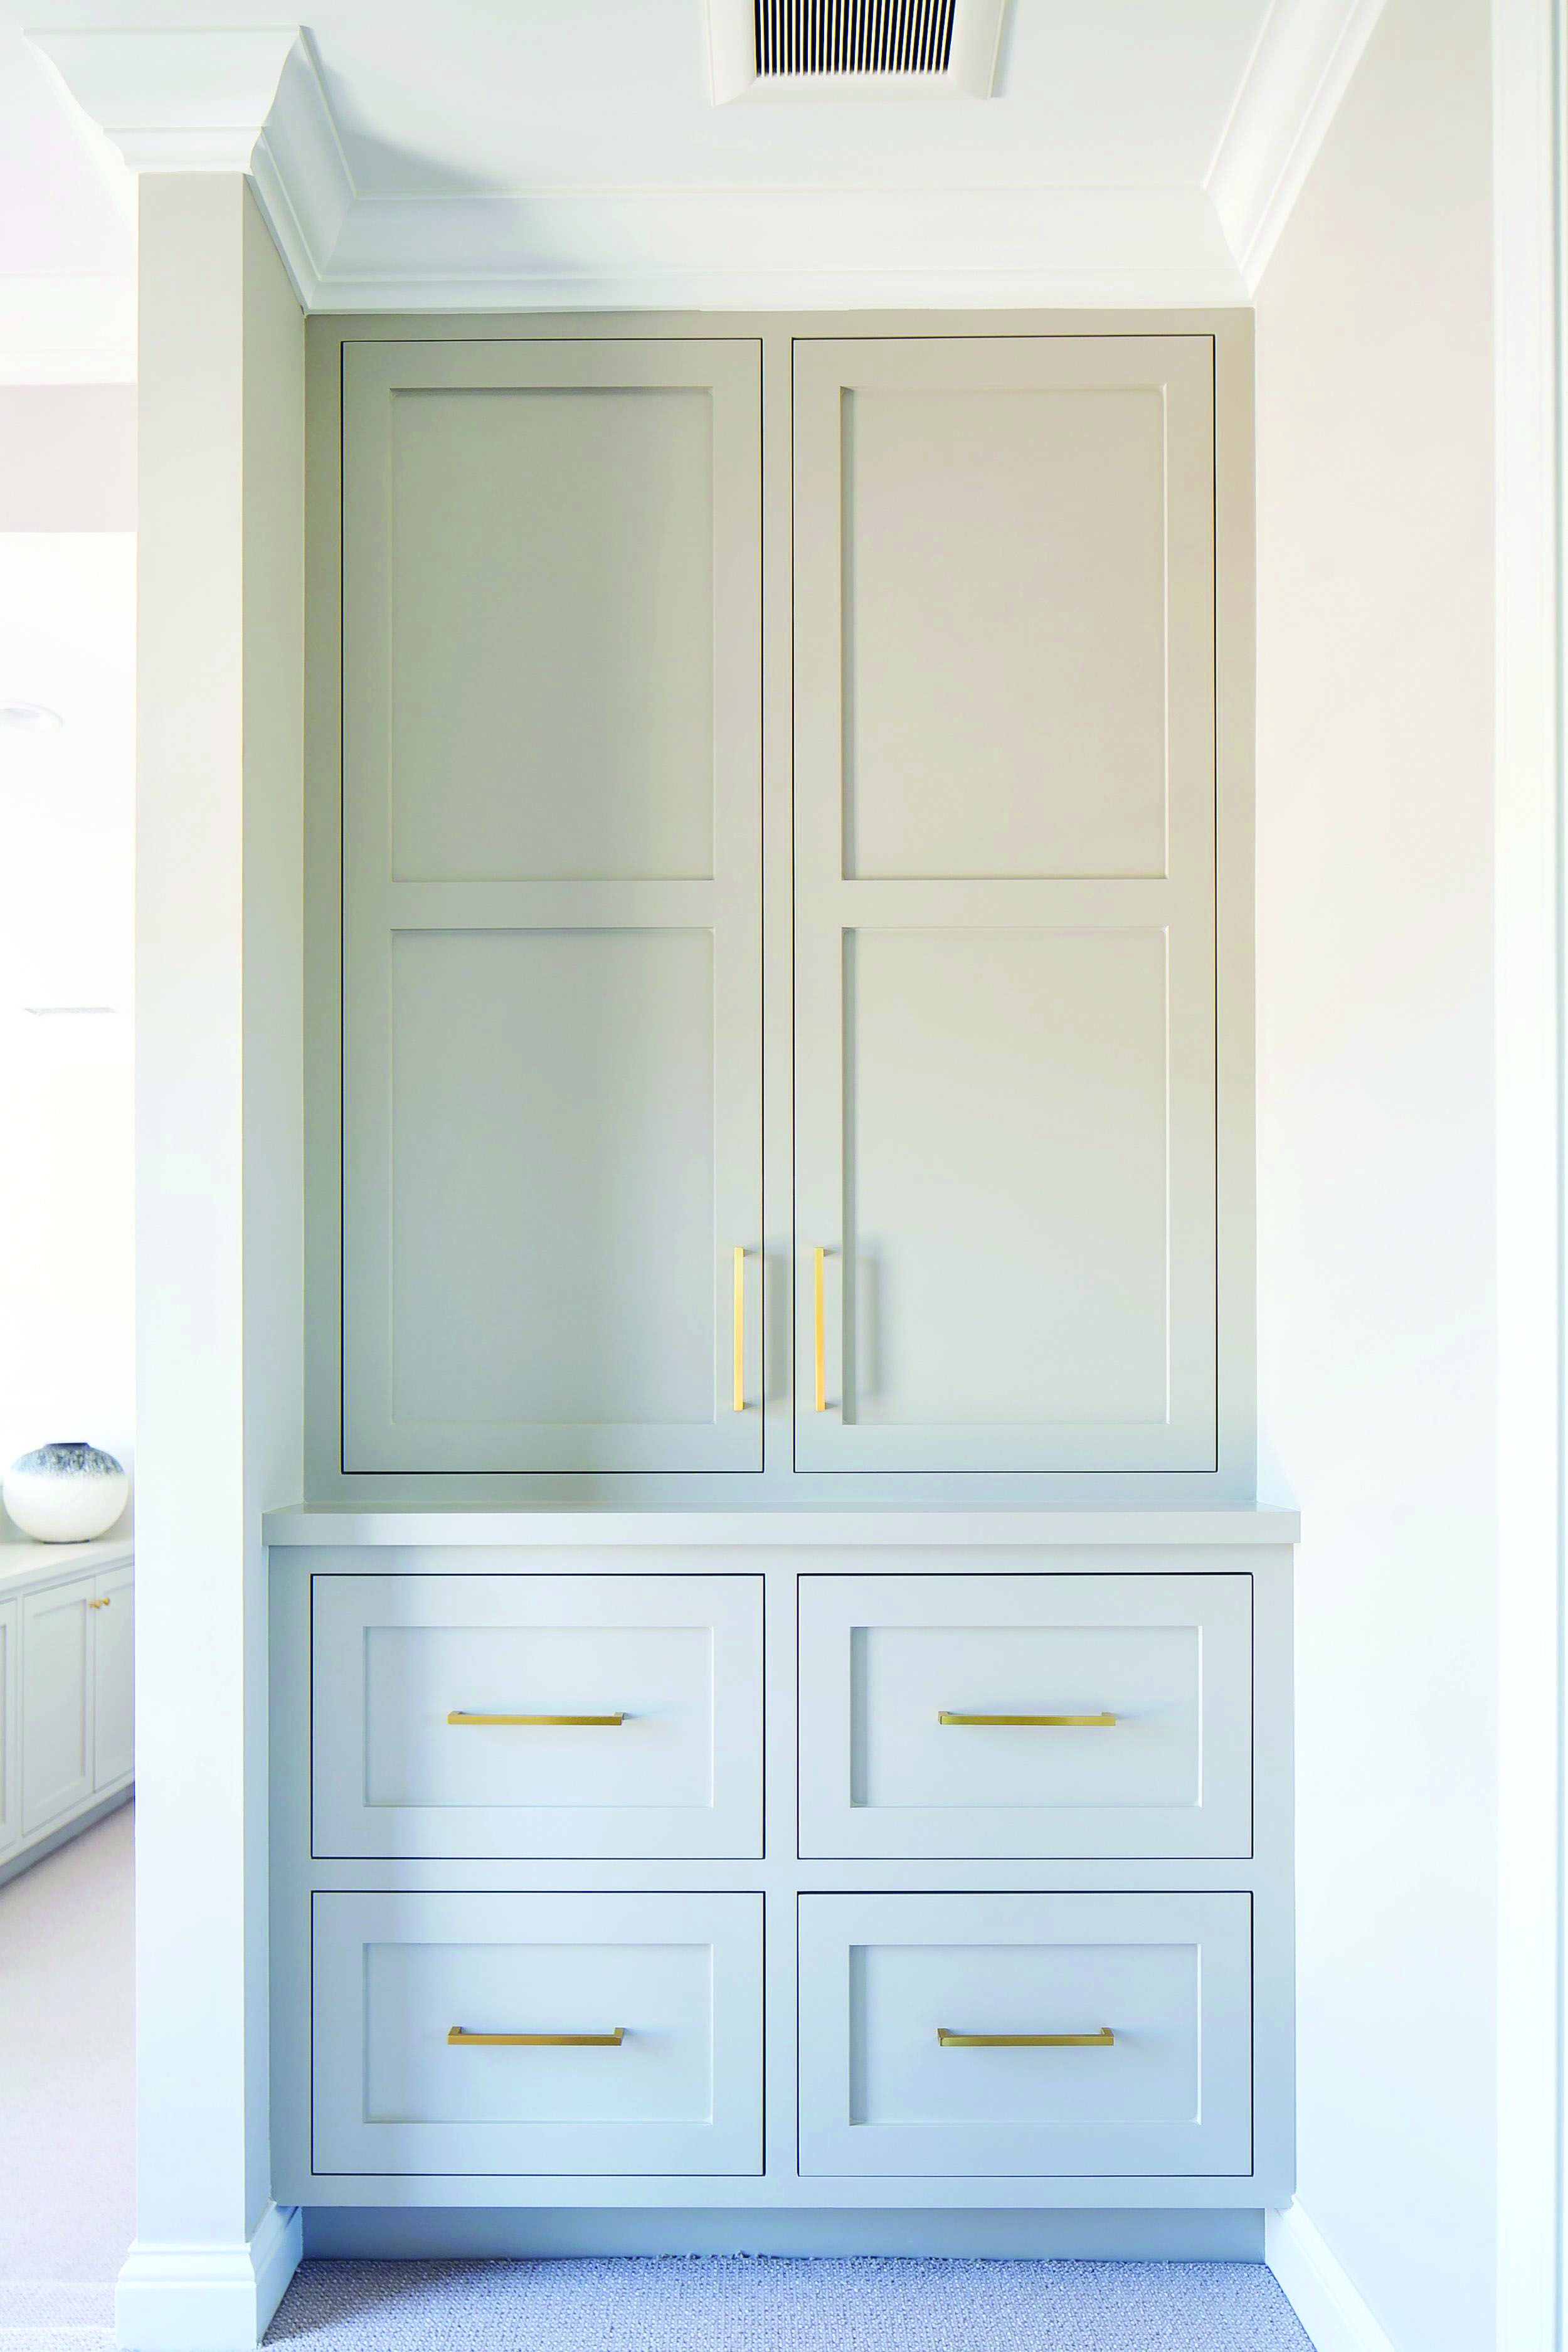 10 Classy Dining Room Storage Space Tips Built In Pantry